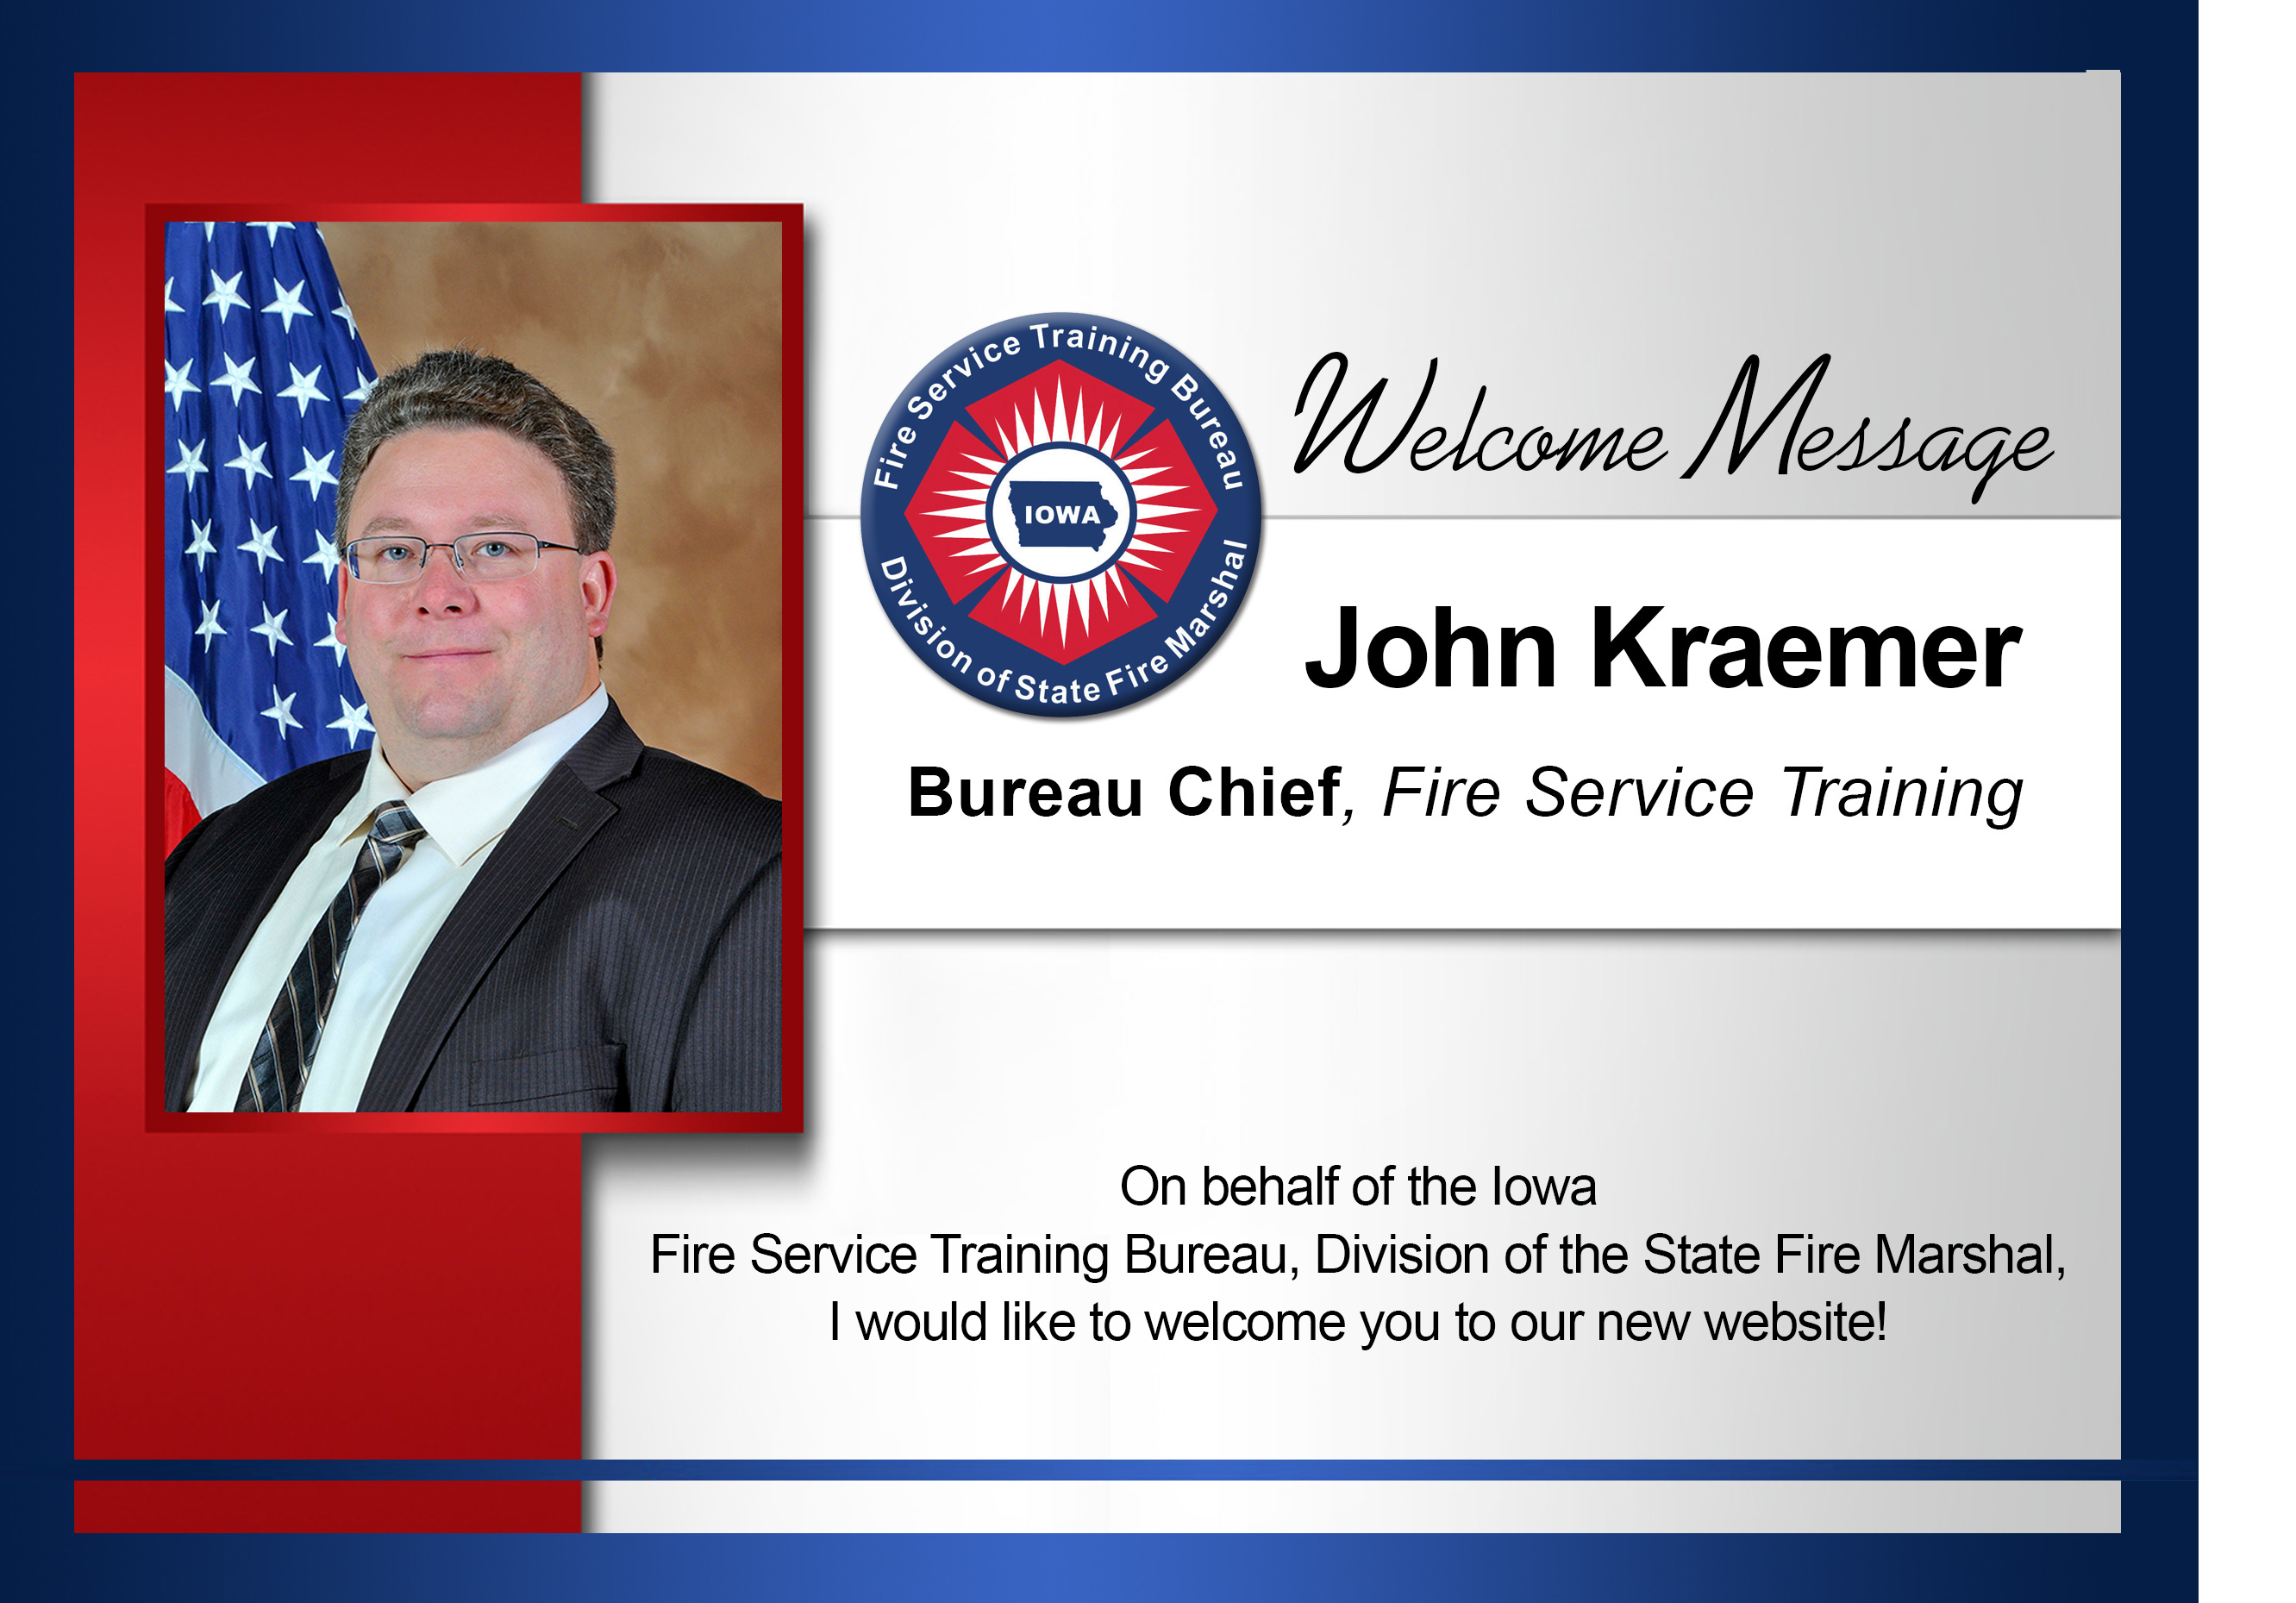 Fire Service Training Bureau Chief John Kraemer image welcoming visitors to the new website.